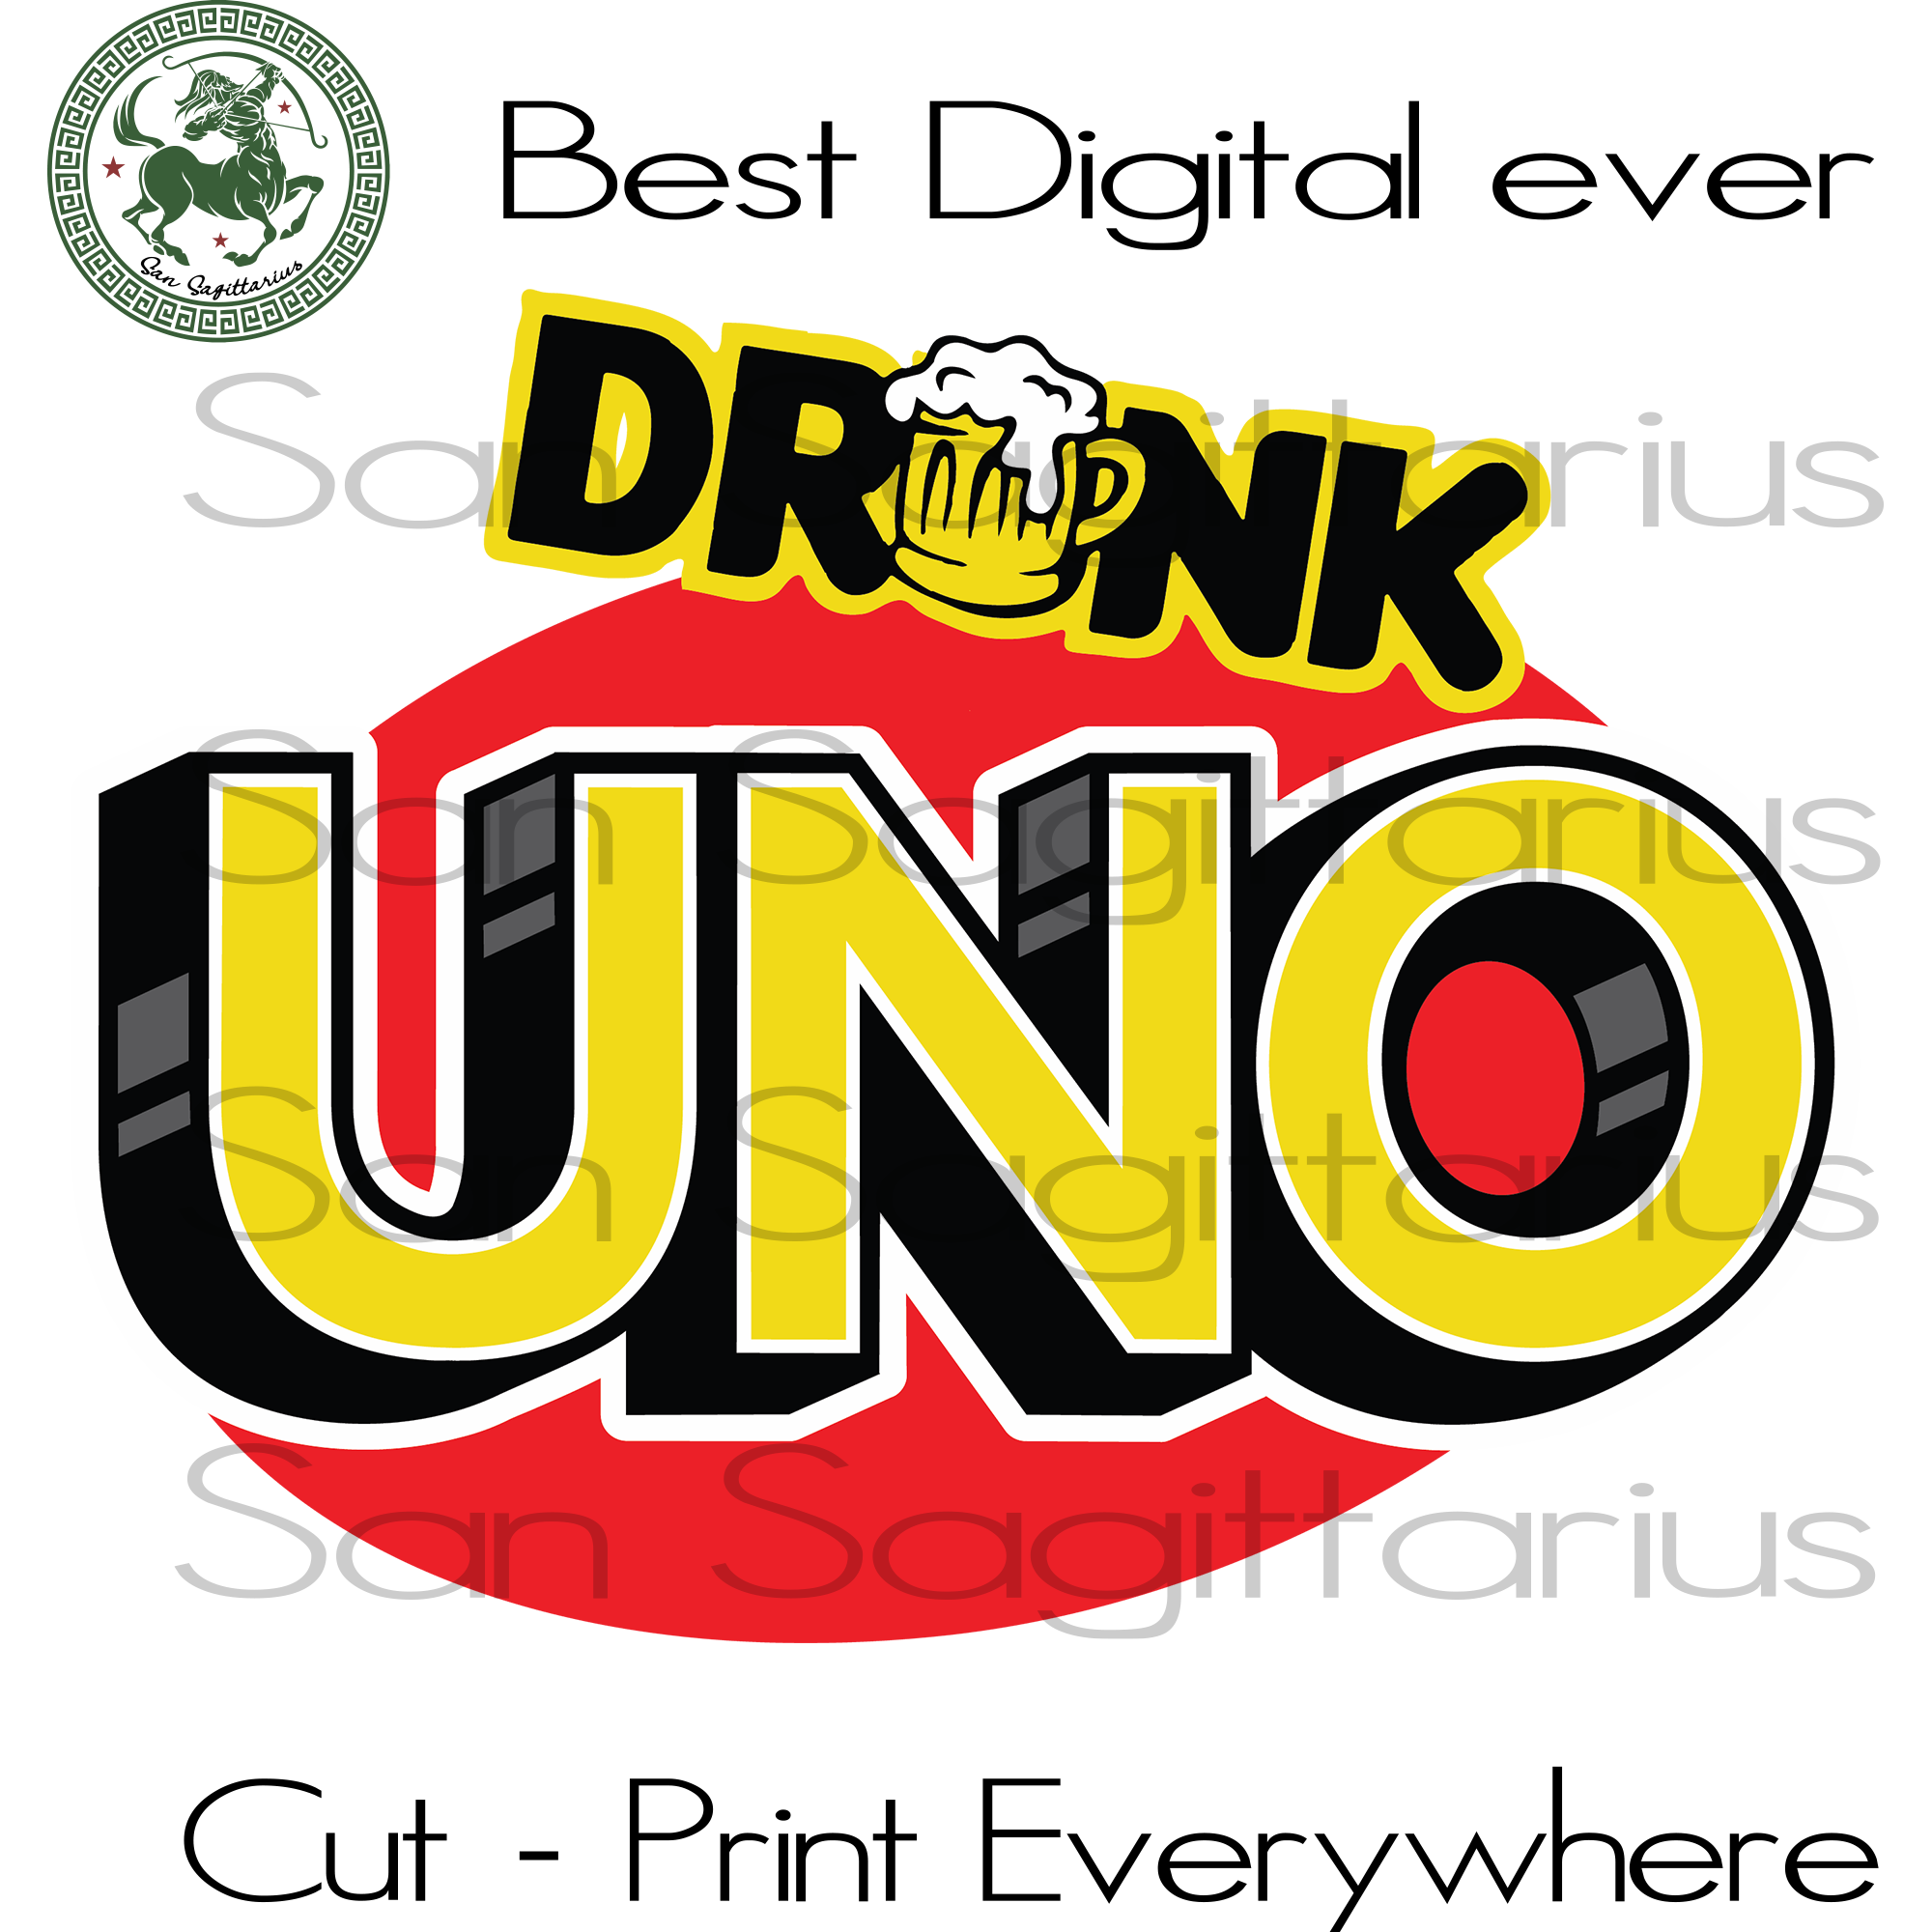 Uno drunk Card Svg, Uno Svg Birthday, Uno Drunk Logo, Uno Shirt Svg, Uno Card Svg, Uno We Out, Uno Party, Uno Alphabet, Uno 2020 Svg, Senior Uno, Class Of 2020, Uno Birthday, Uno Cards, drink